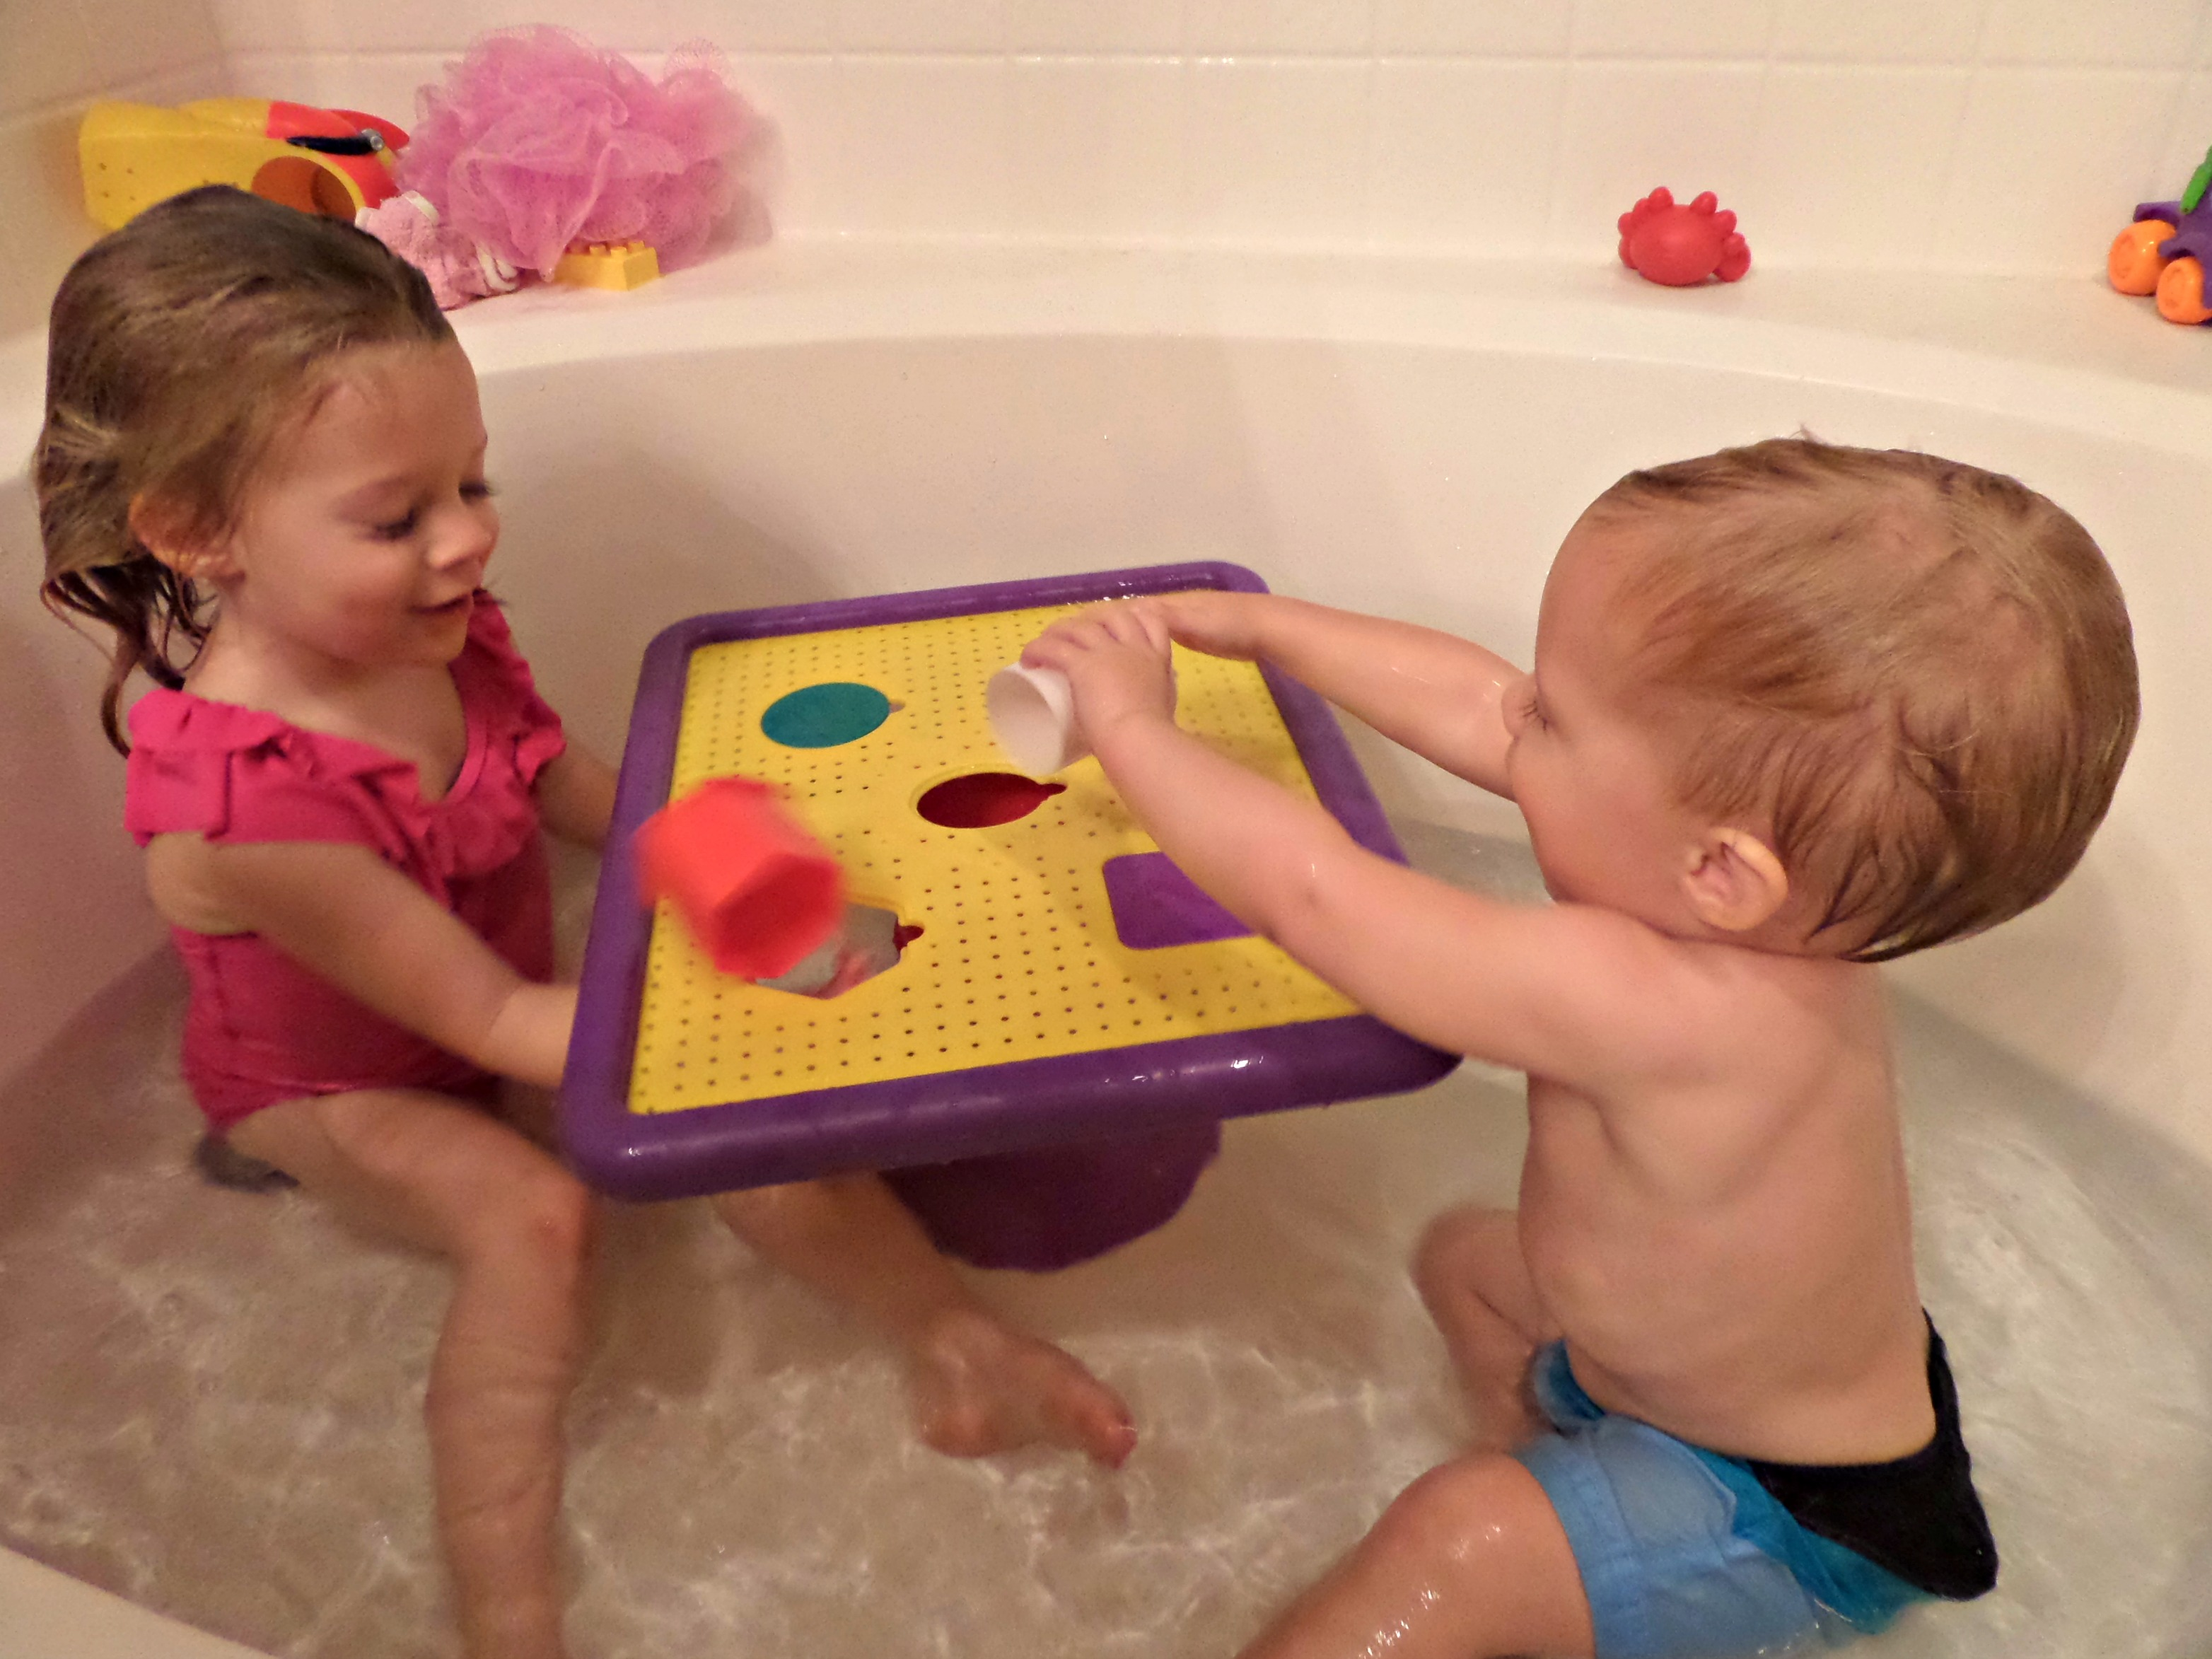 Bath Tub Fun With The Tubby Table And Giveaway! - The Funny Mom Blog